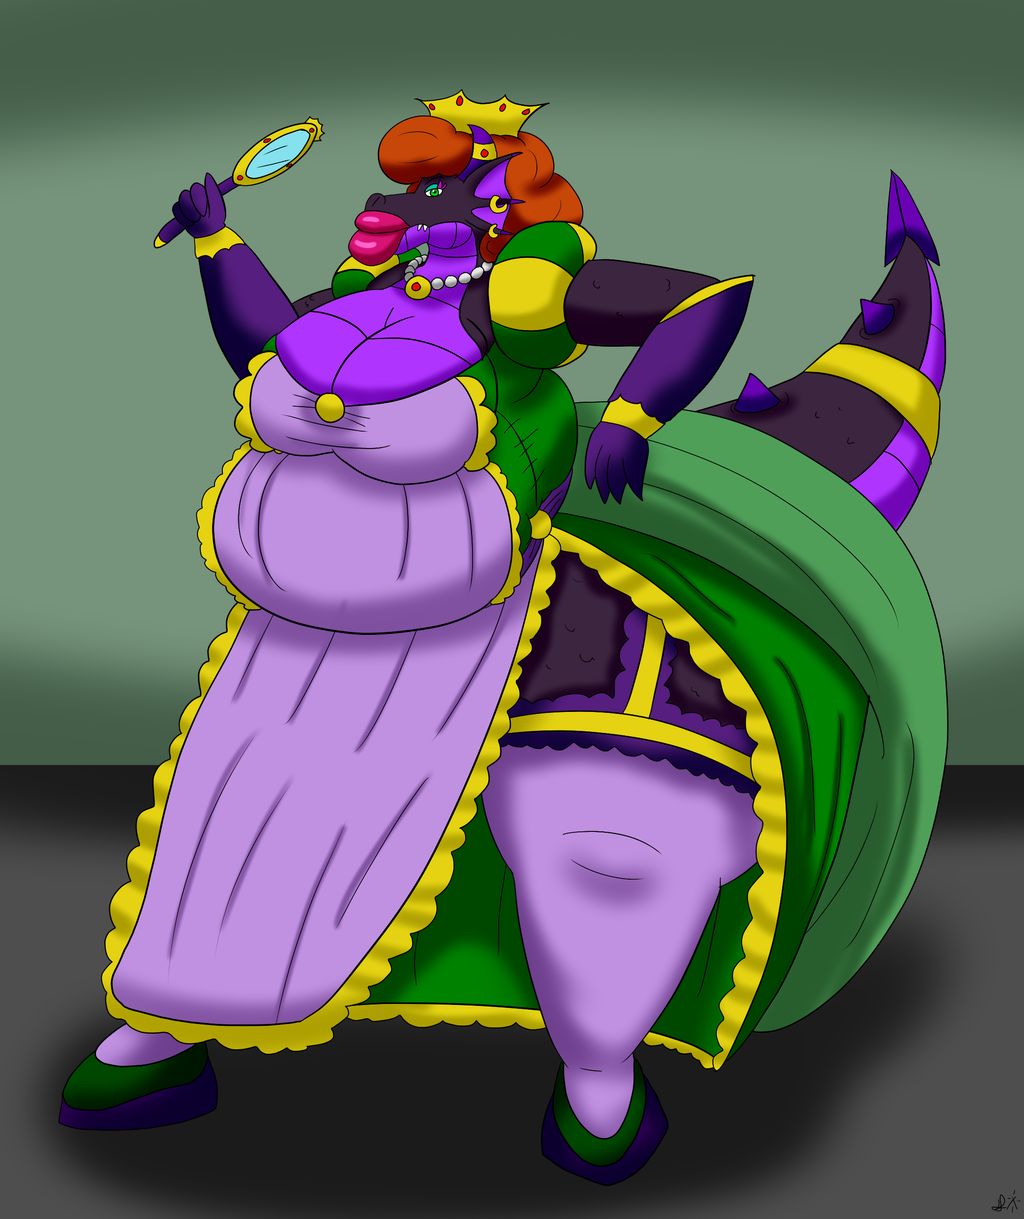 The new empress's body